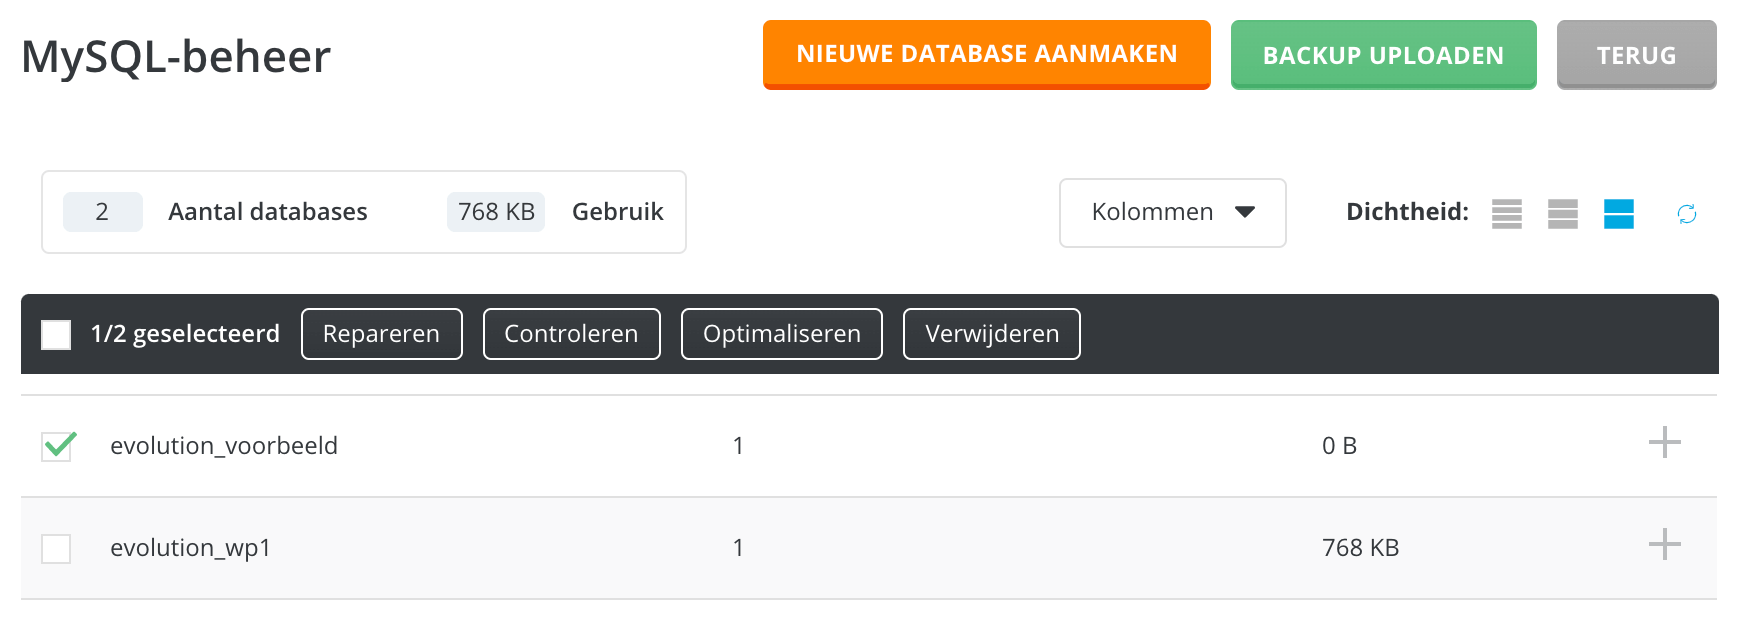 Het repareren en optimaliseren van een database.